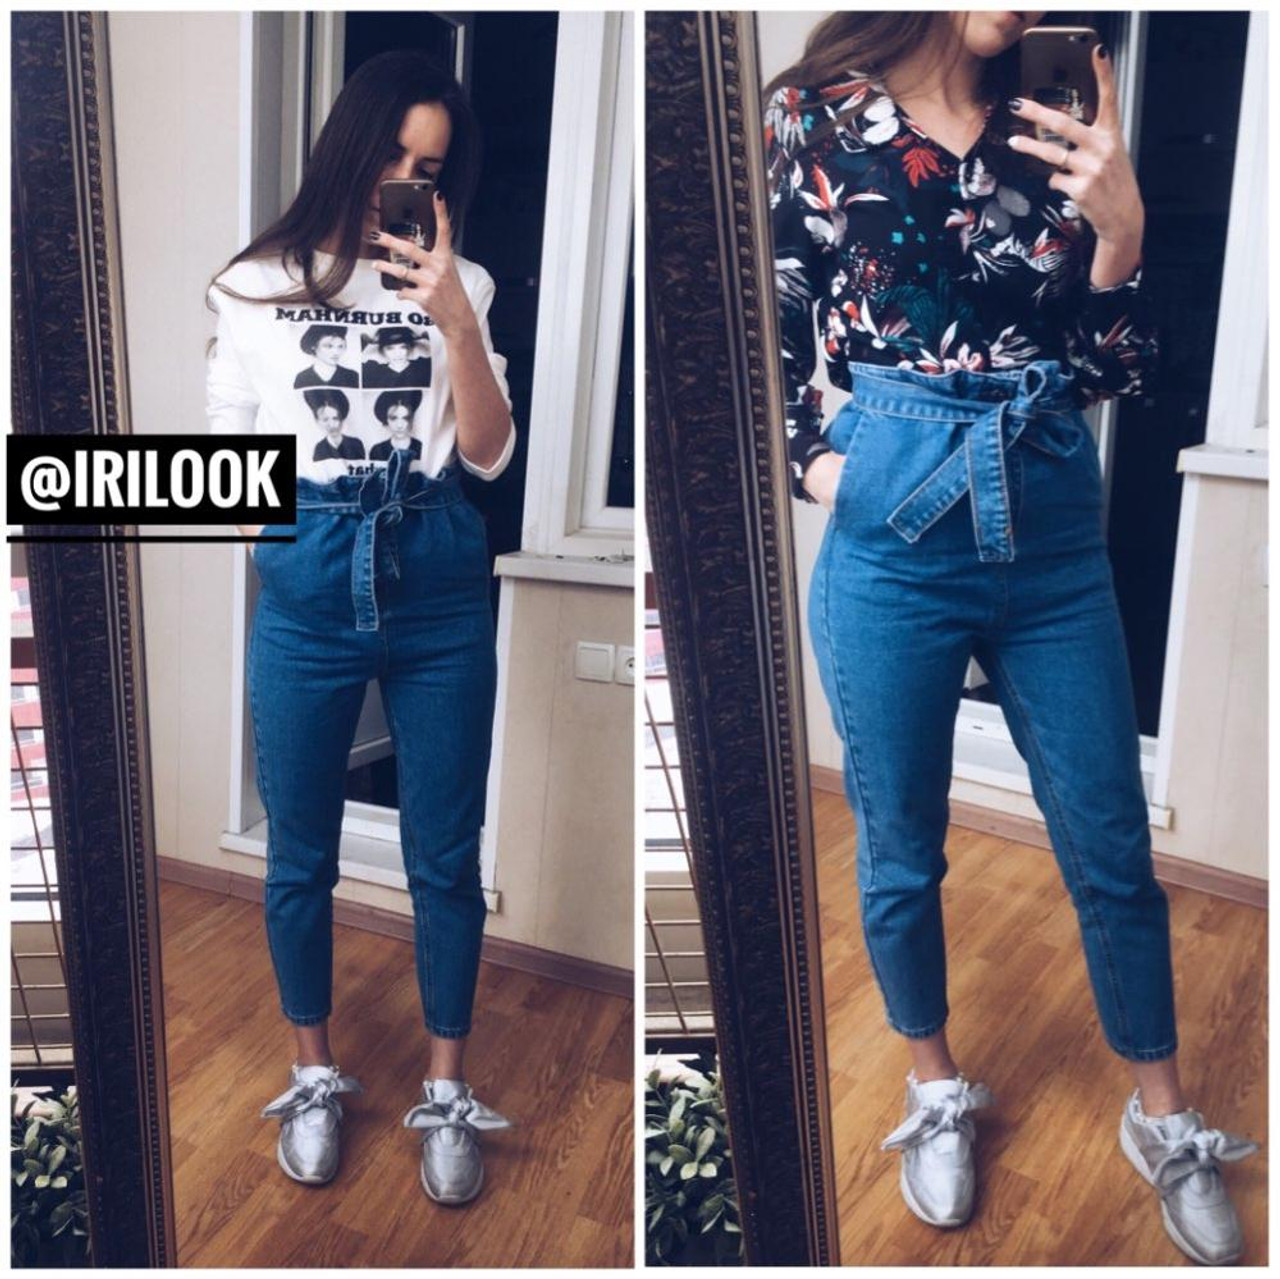 Zhisilao 2018 Jeans Woman Jeans Denim Pants Jeans Harem Pants Woman Trousers Woman Pantalon Mujer Casual Pants High Waist Onshopdeals Com